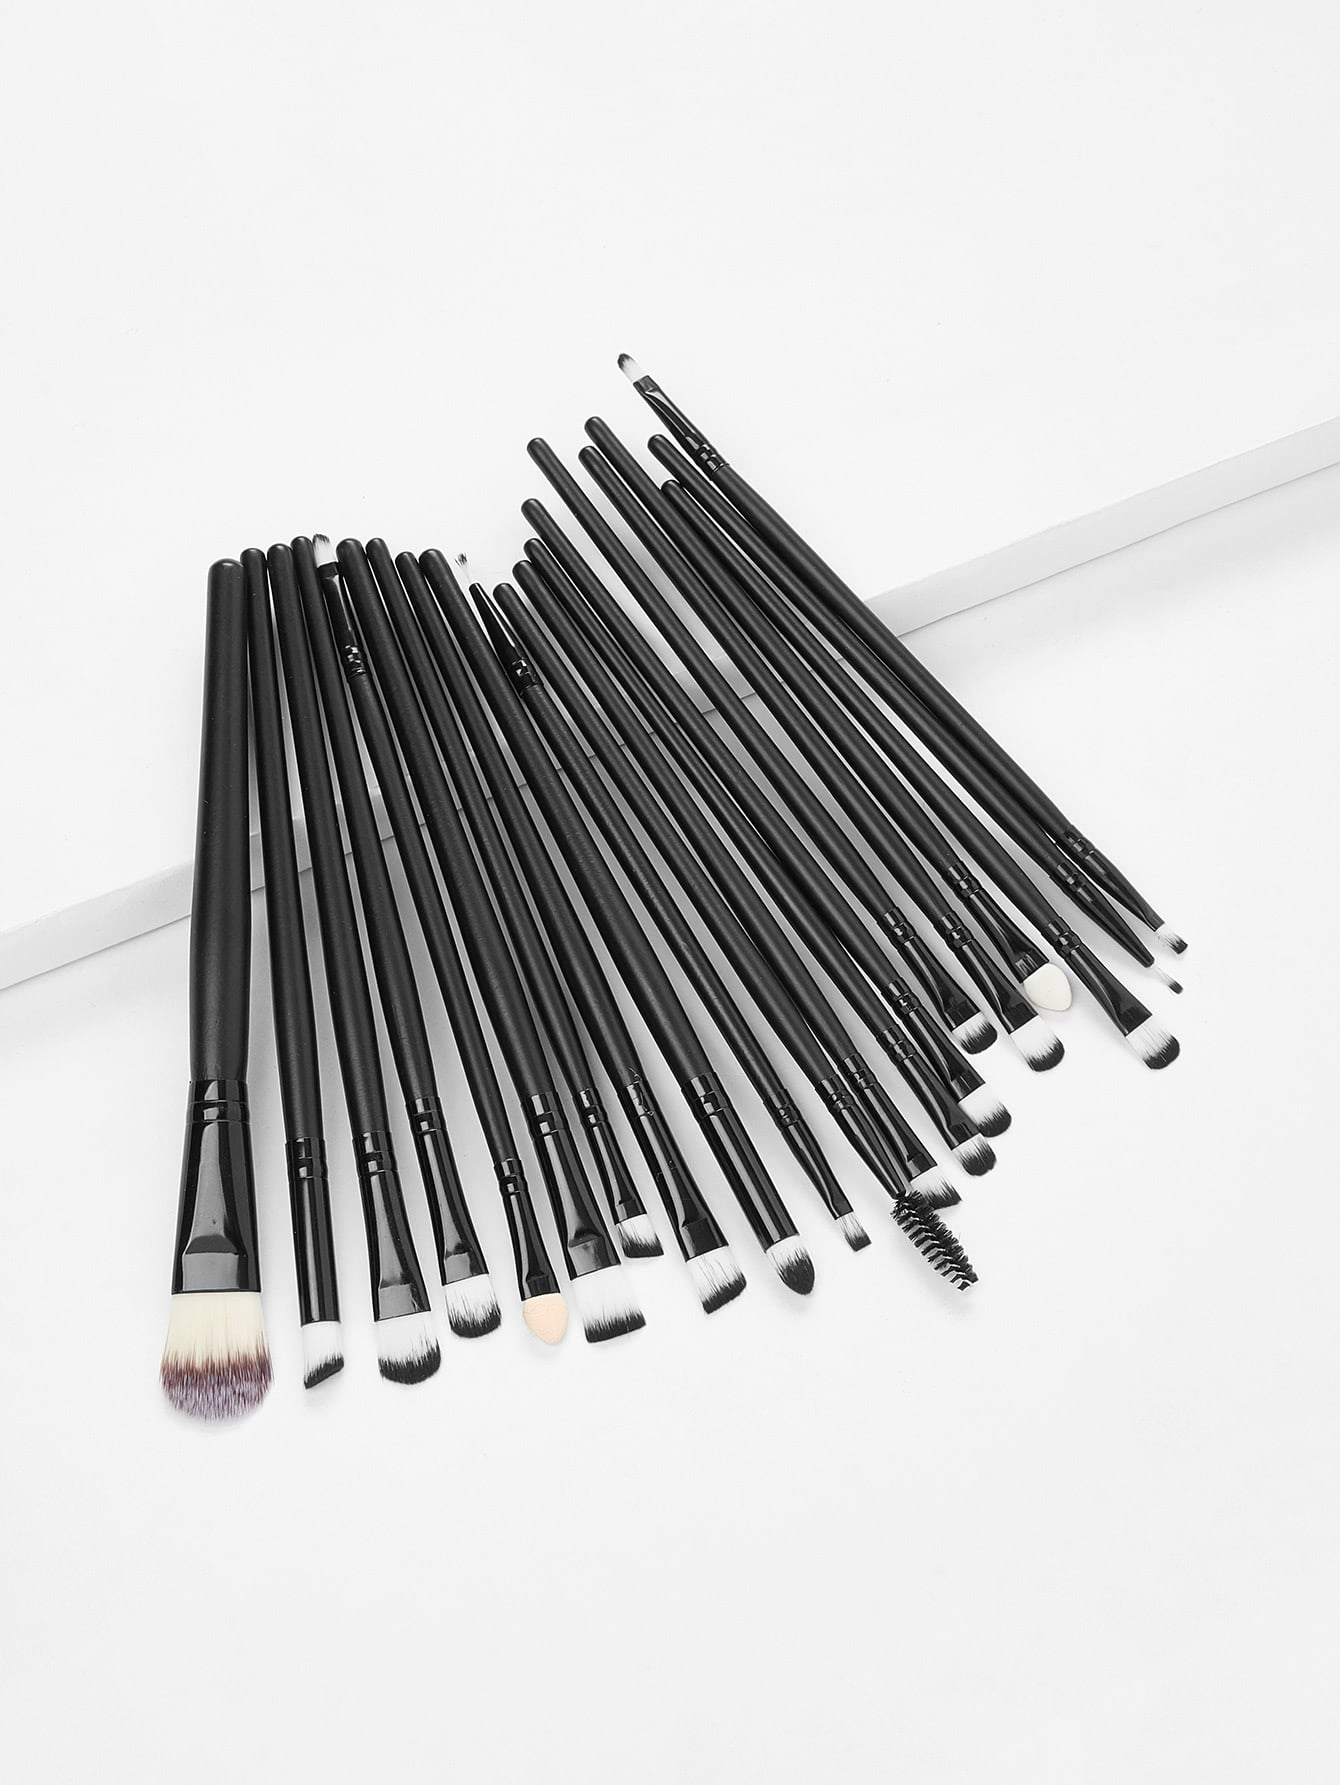 Professional Makeup 20pcs Brushes Set Powder Foundation Eyeshadow Eyeliner 5pcs makeup brushes tools professional cosmetics blush face powder brushes kit makeup brush set for women foundation make up